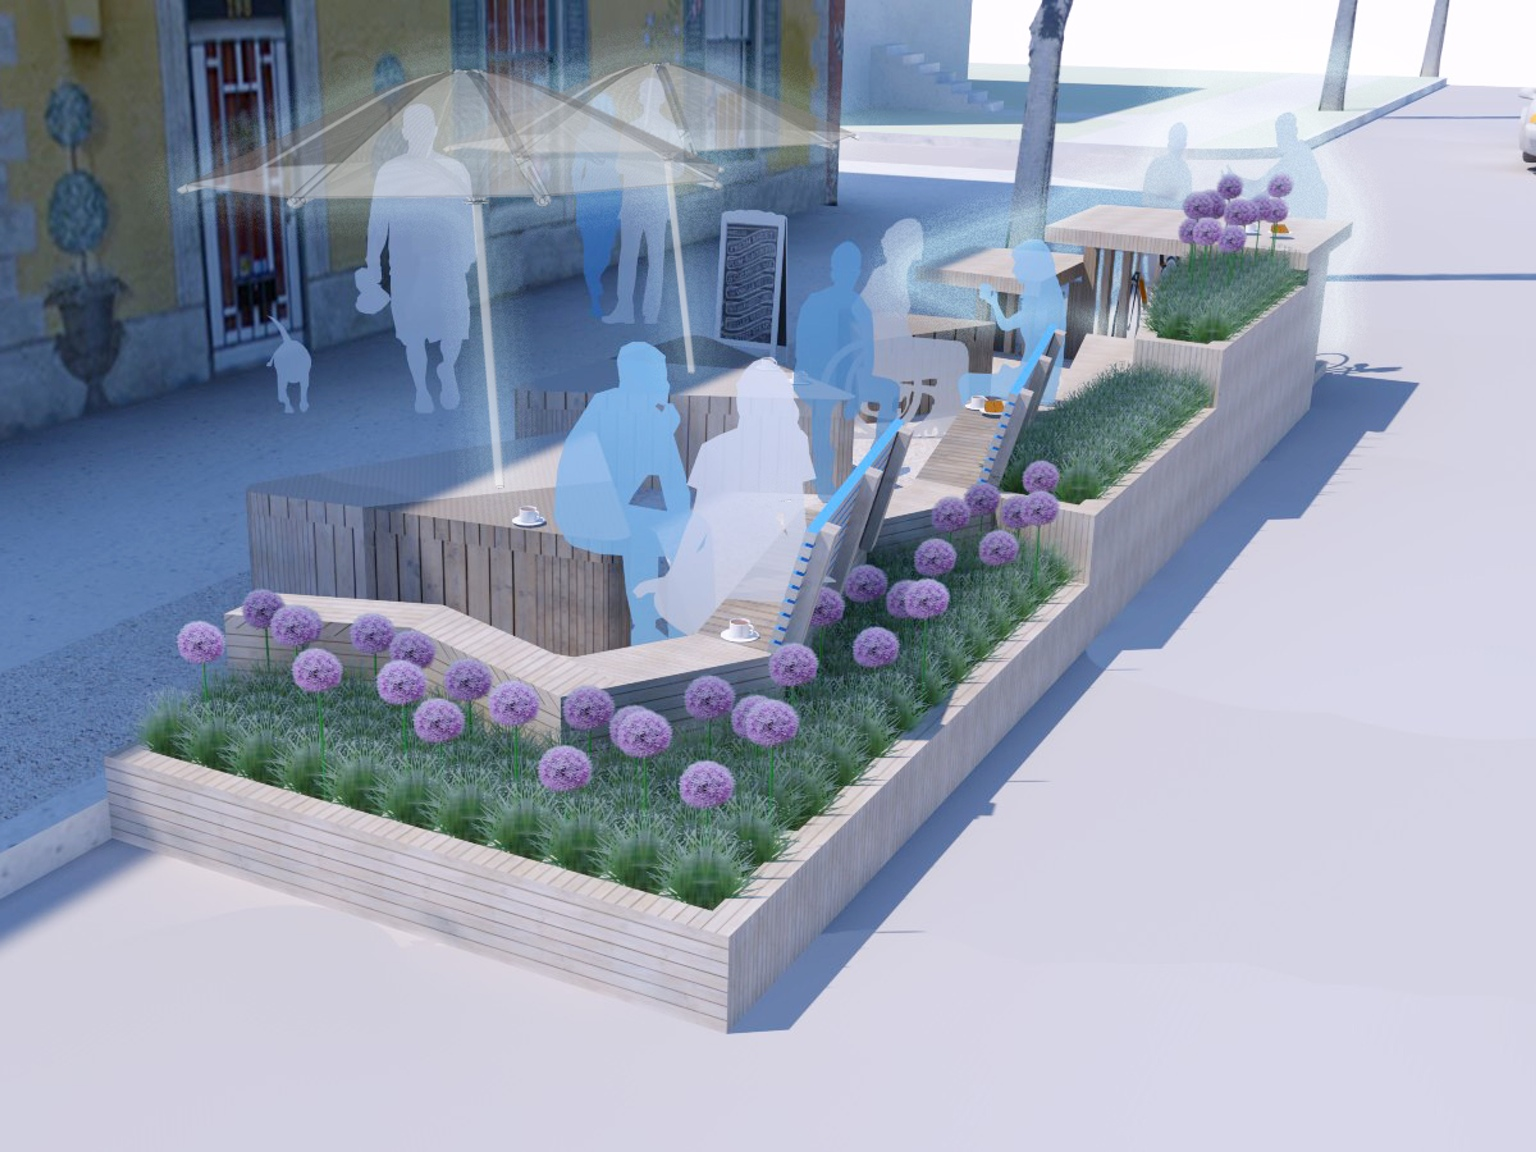 photo by /the-french-quarter-parklet https://www.kickstarter.com/projects/1703309847/the-french-quarter-parklet